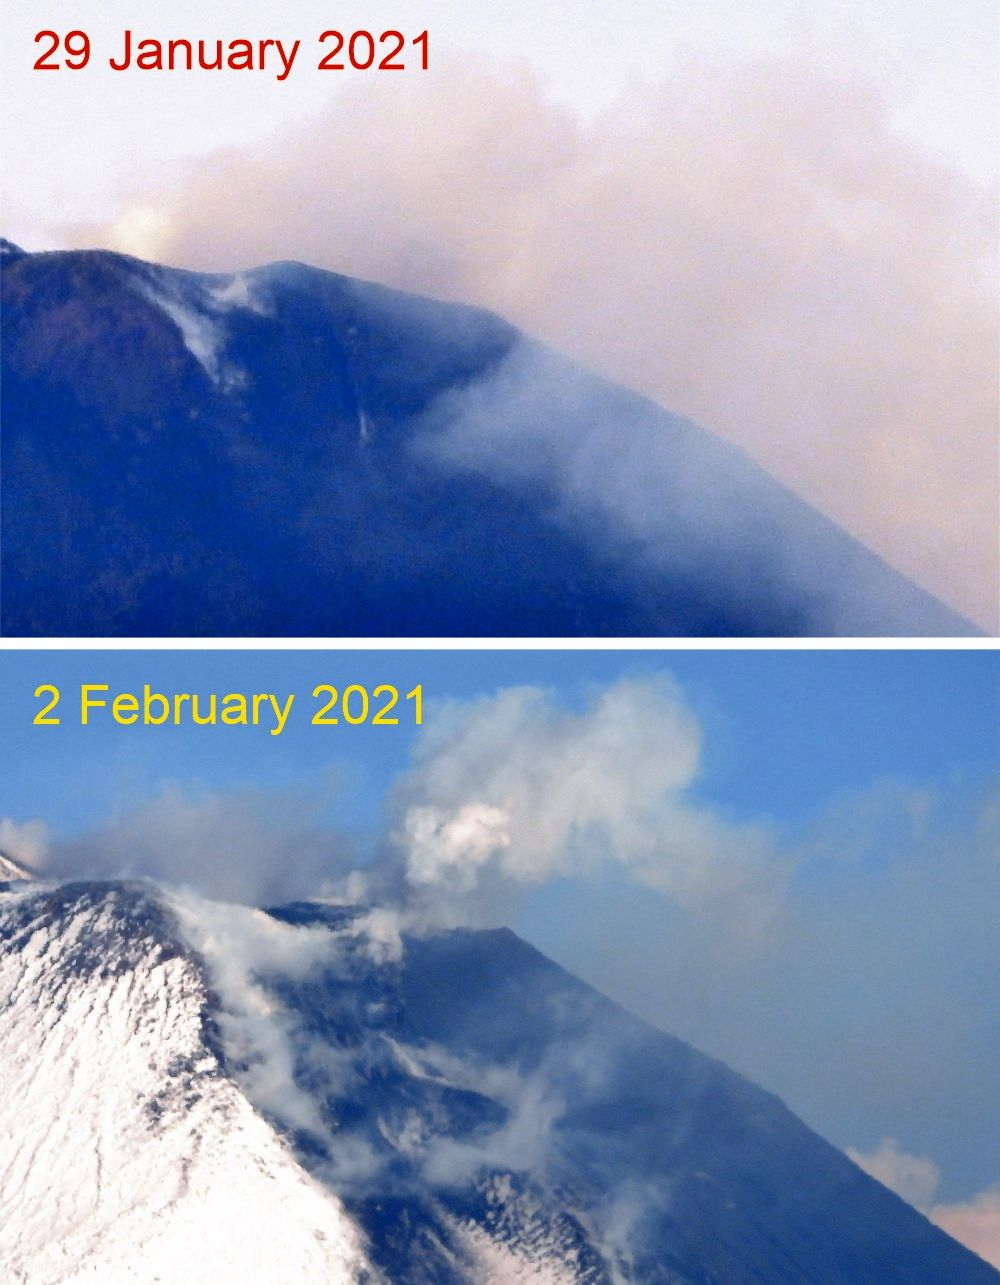 Etna - changes in the new SEC scoria cone in 4 days, between January 29 and February 2, 2021. - Doc. Boris Behncke